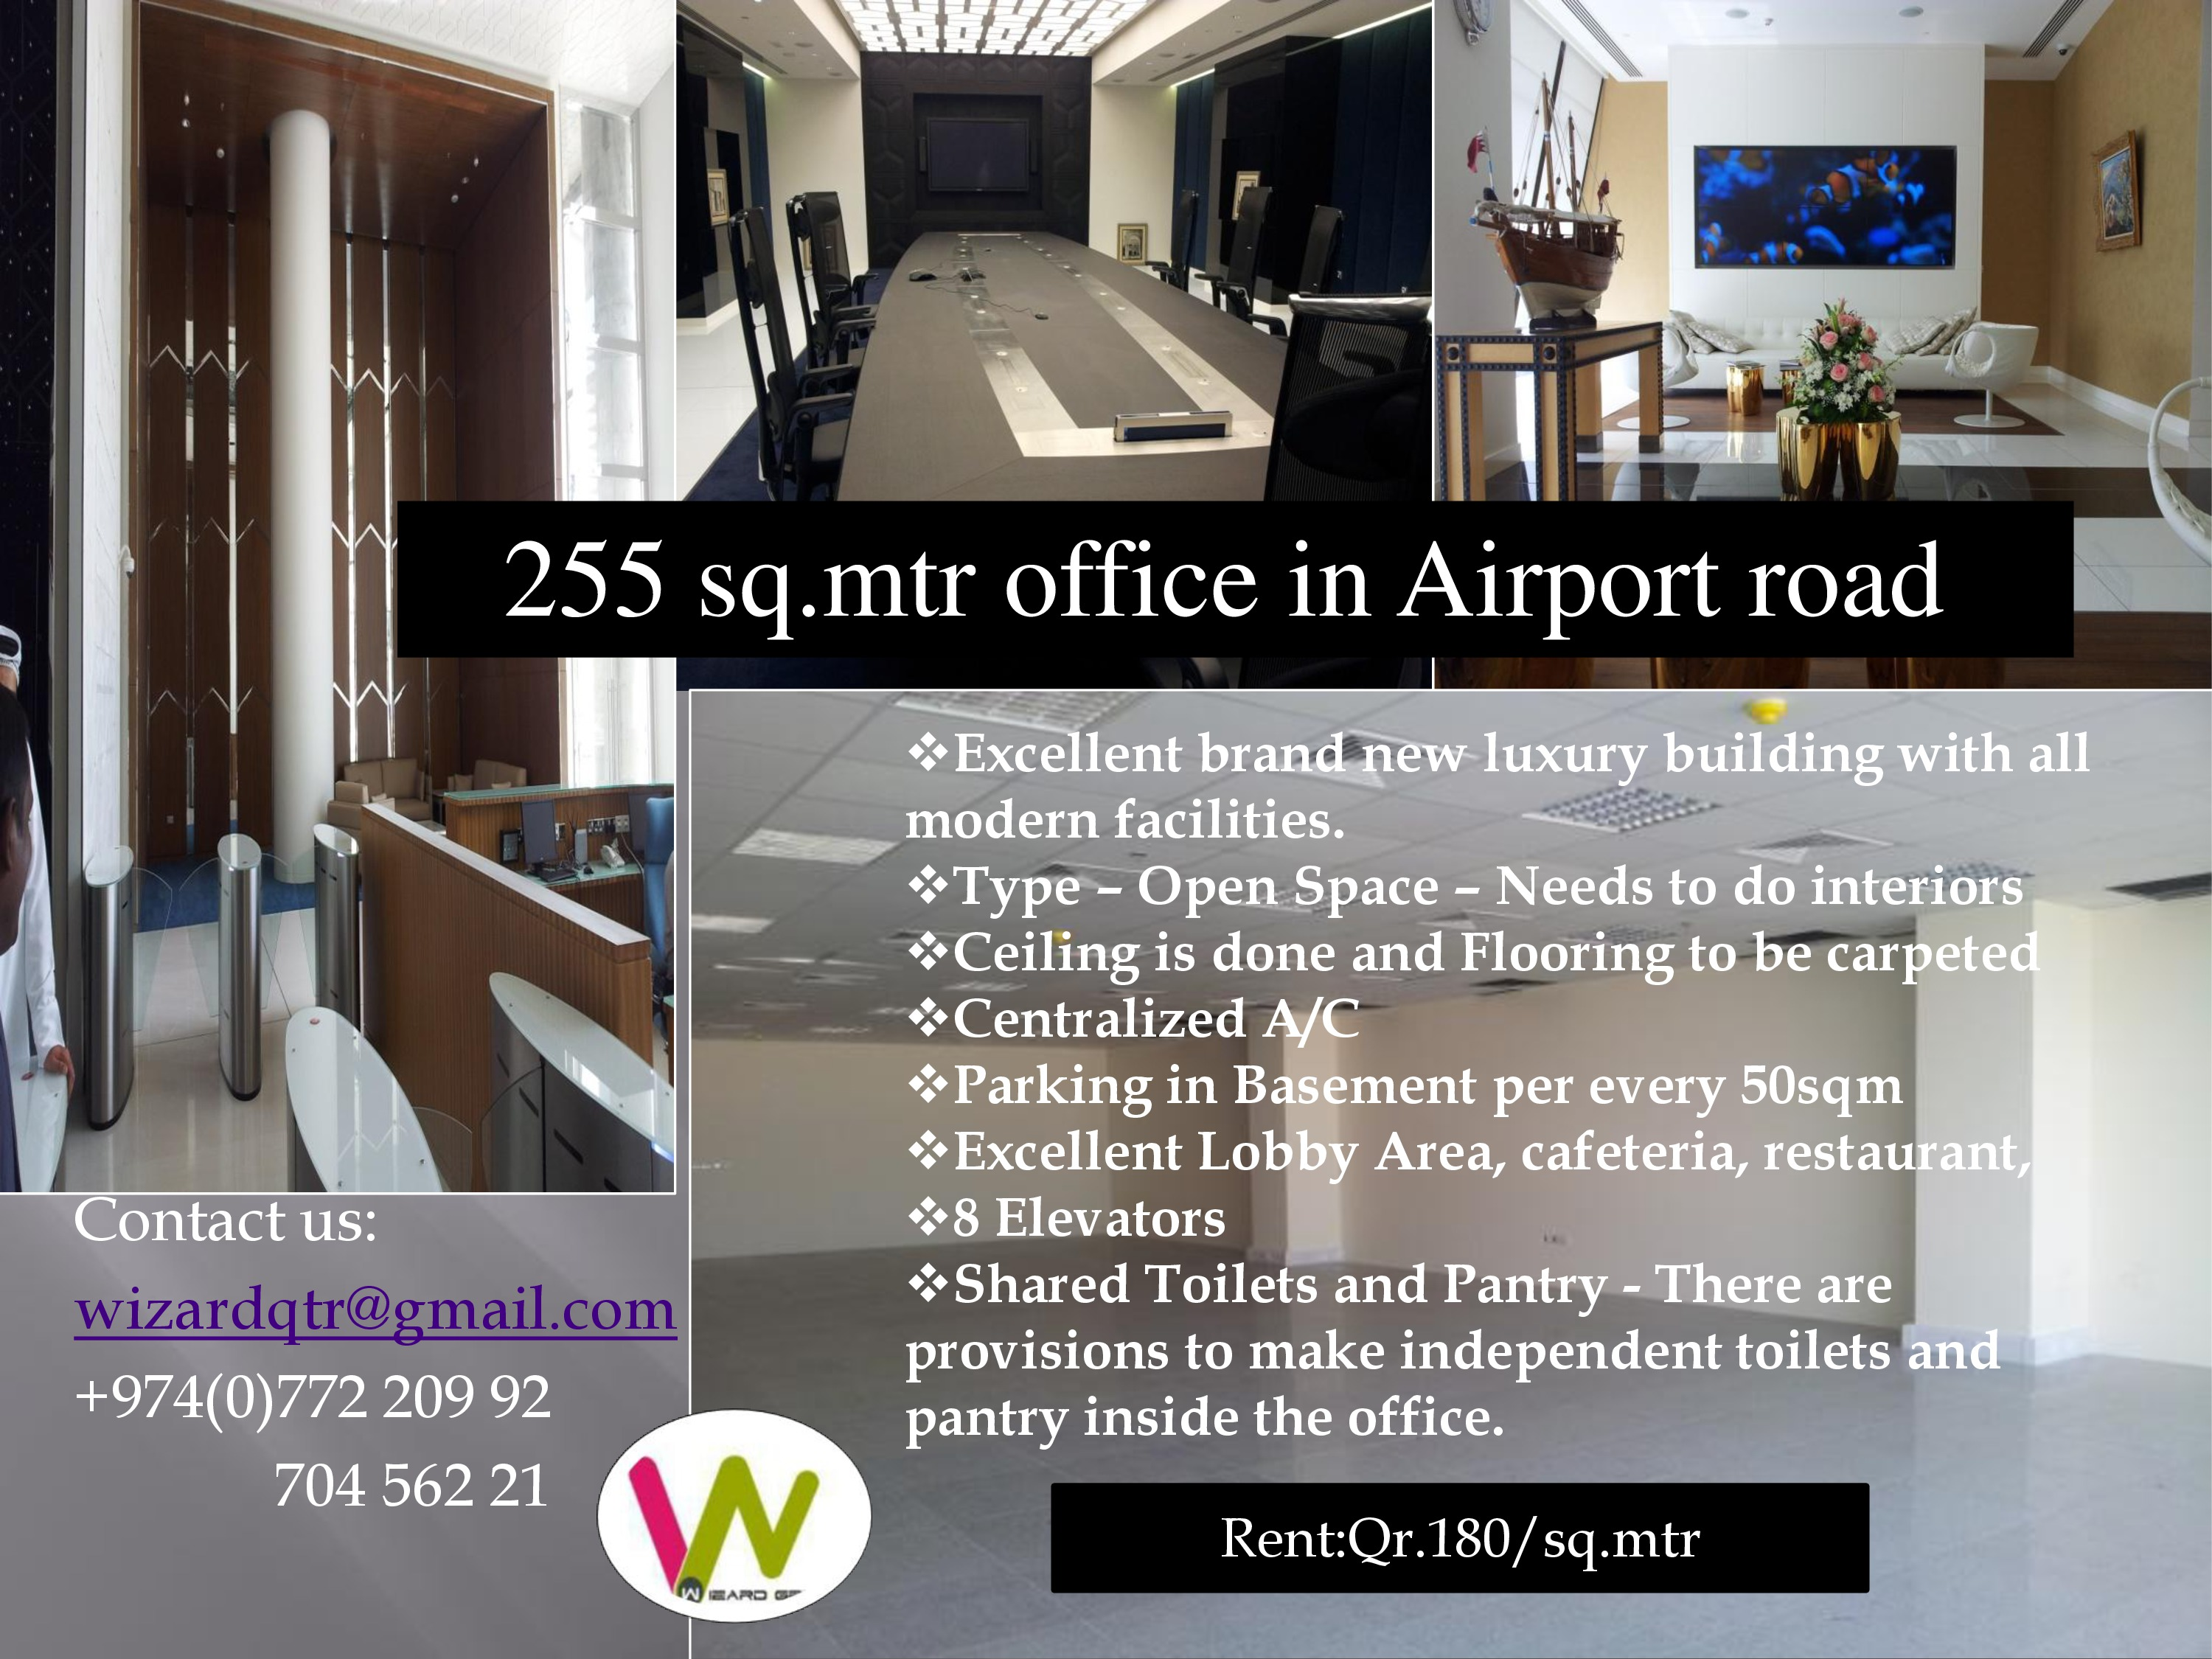 0813292bba9 255 sq.mtr luxurious office space in an elegant building